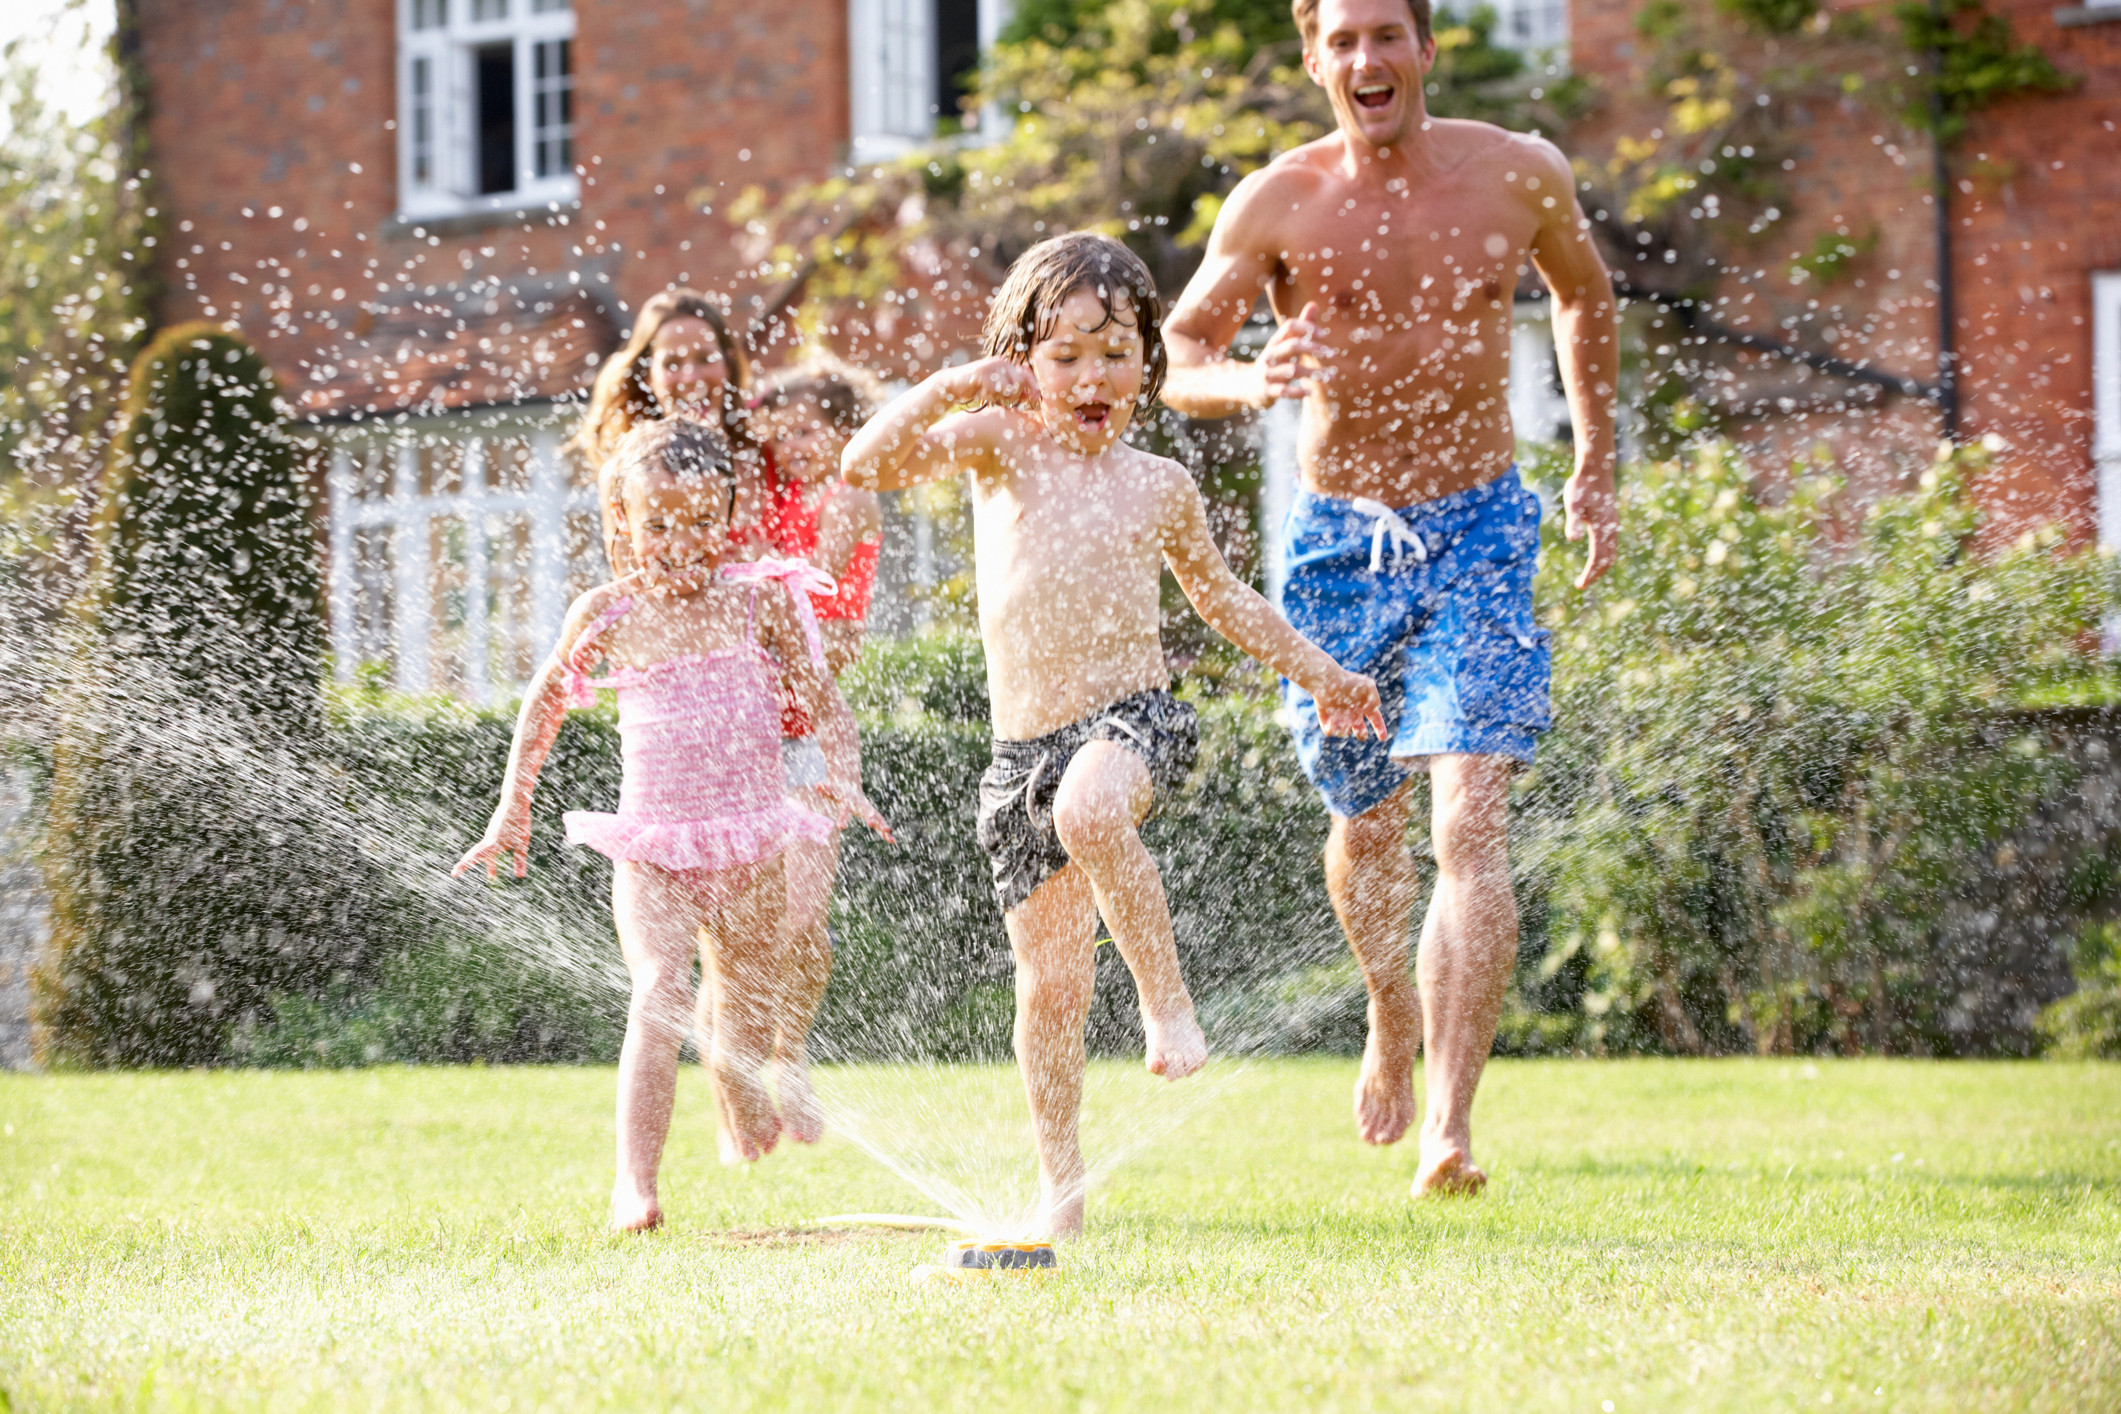 family sprinkler